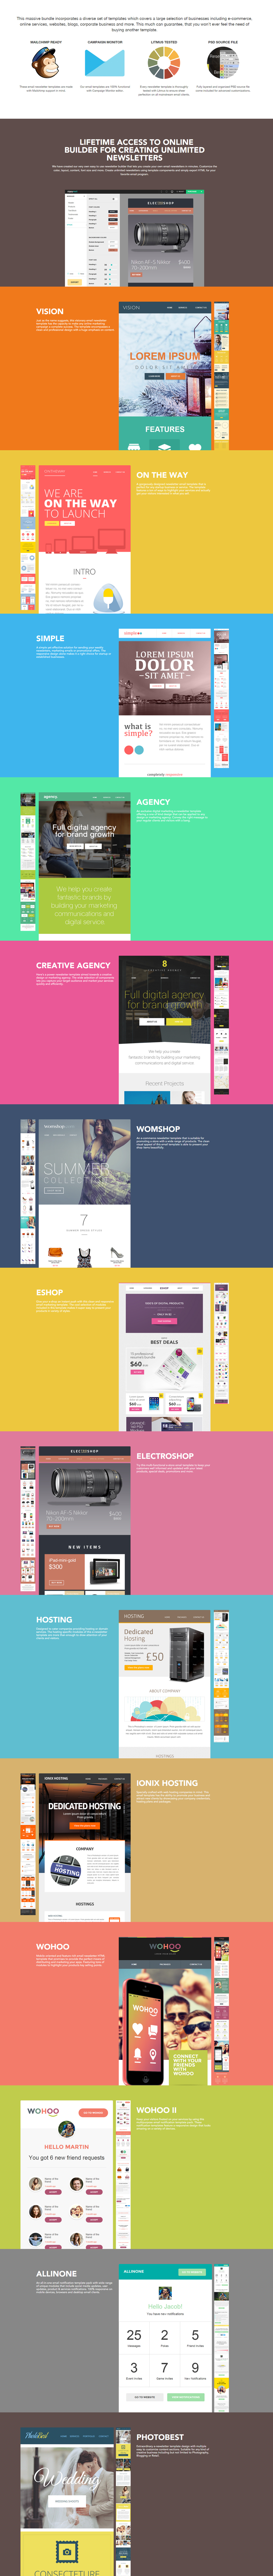 A Massive Collection Of Email Newsletter Templates For Blogging - Creative newsletter design templates